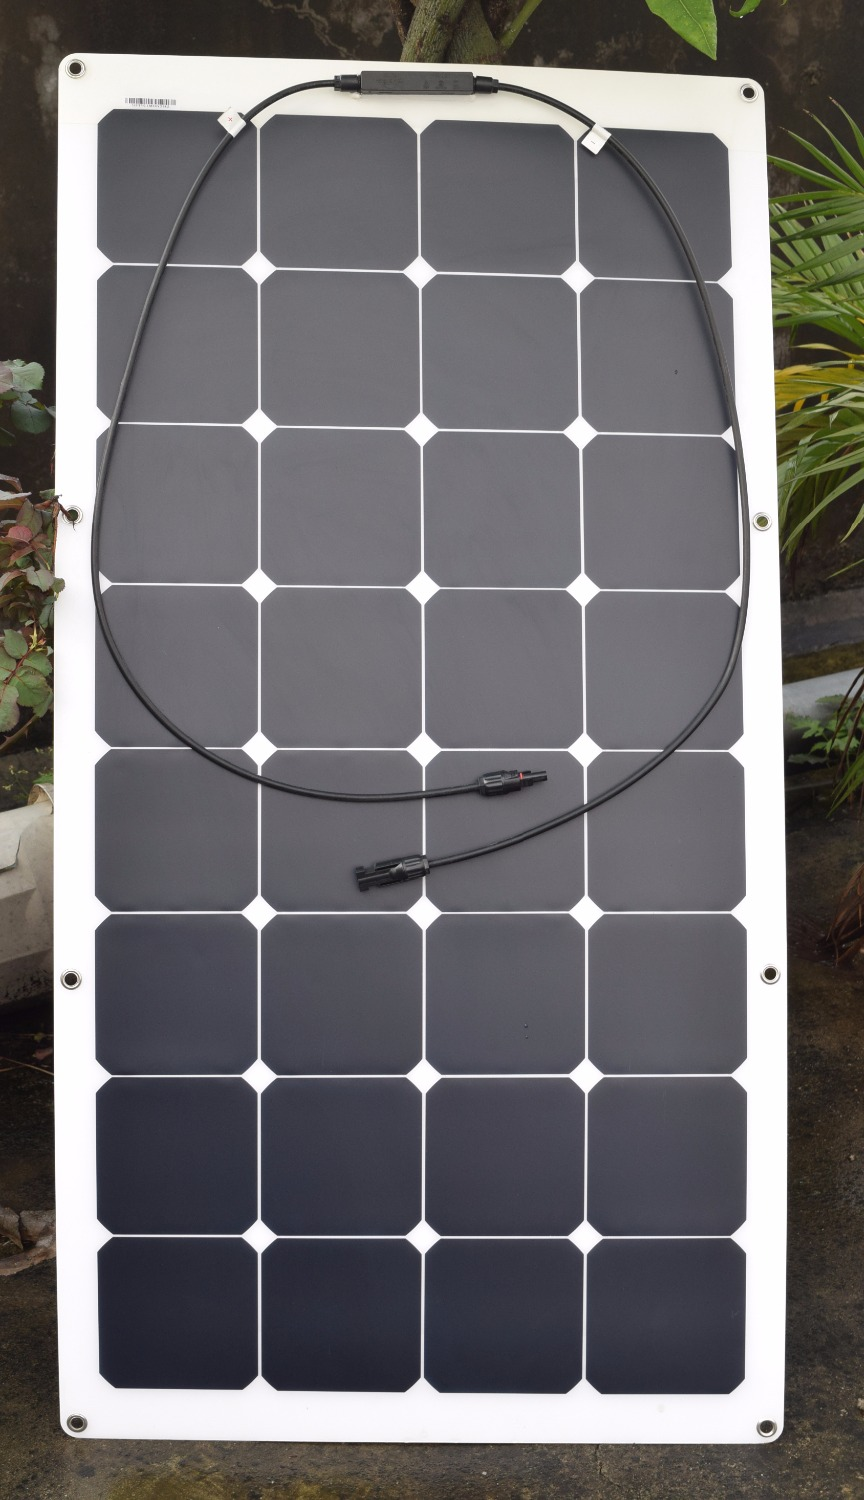 Solarpart 1x 100w Frosted Surface Flexible Solar Panel Cell Module System Kits Diy Rv Marine Boat Camp Car 12v Bat Charger